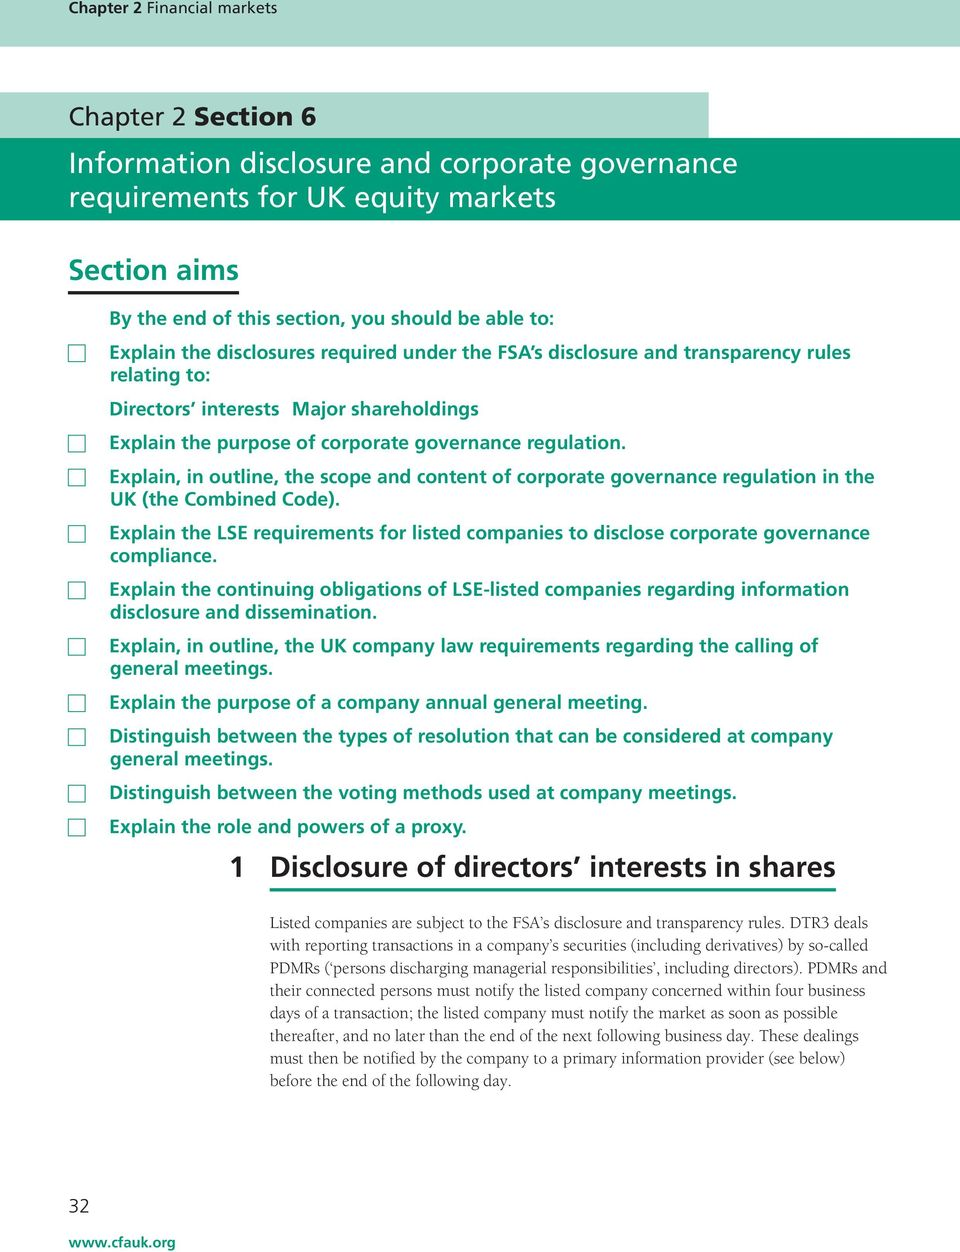 Explain, in outline, the scope and content of corporate governance regulation in the UK (the Combined Code).